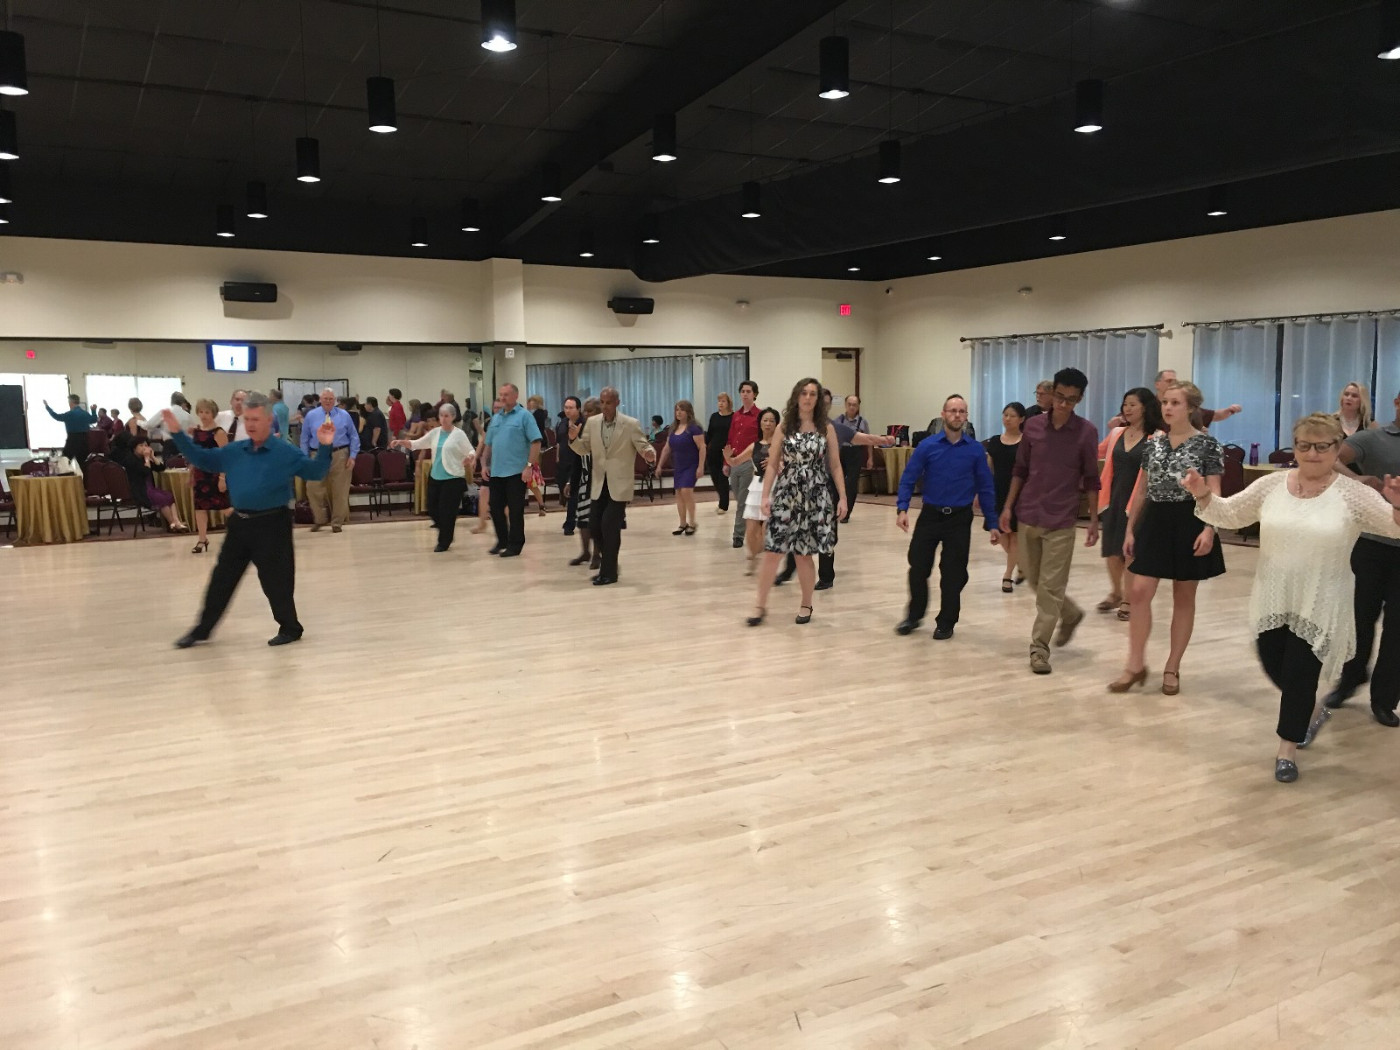 Special needs adults dance styles